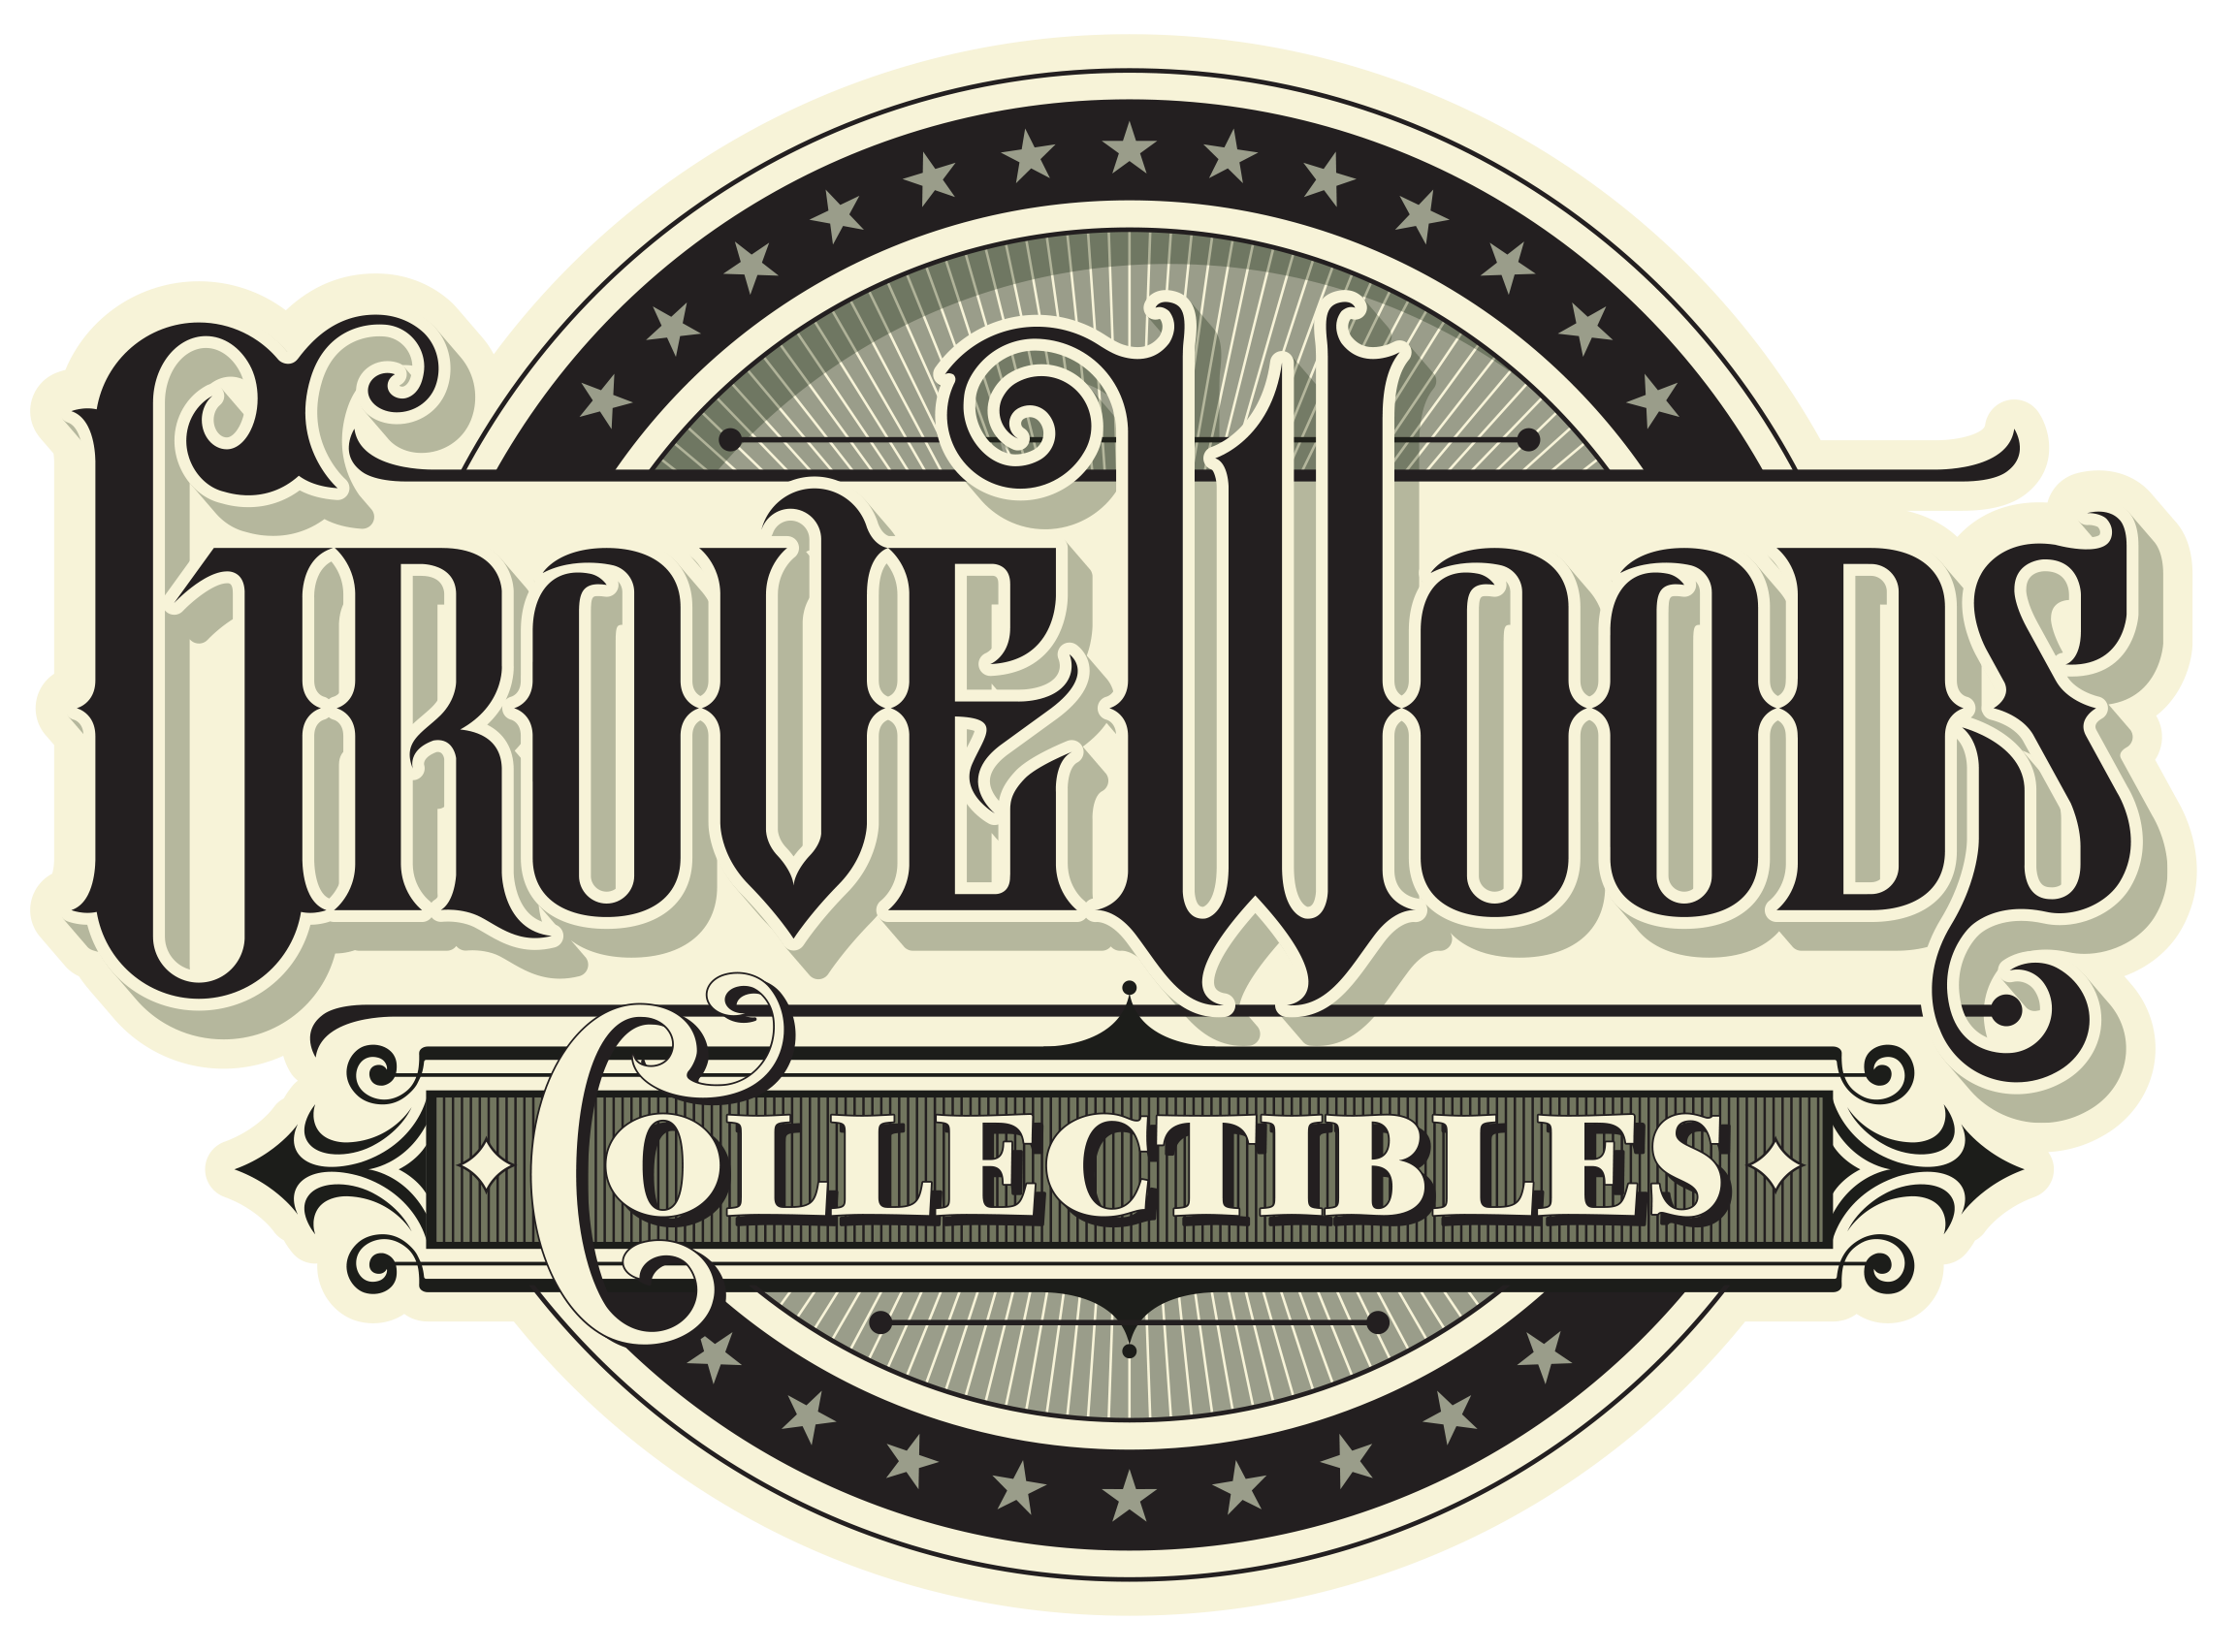 Grove Woods Collectibles